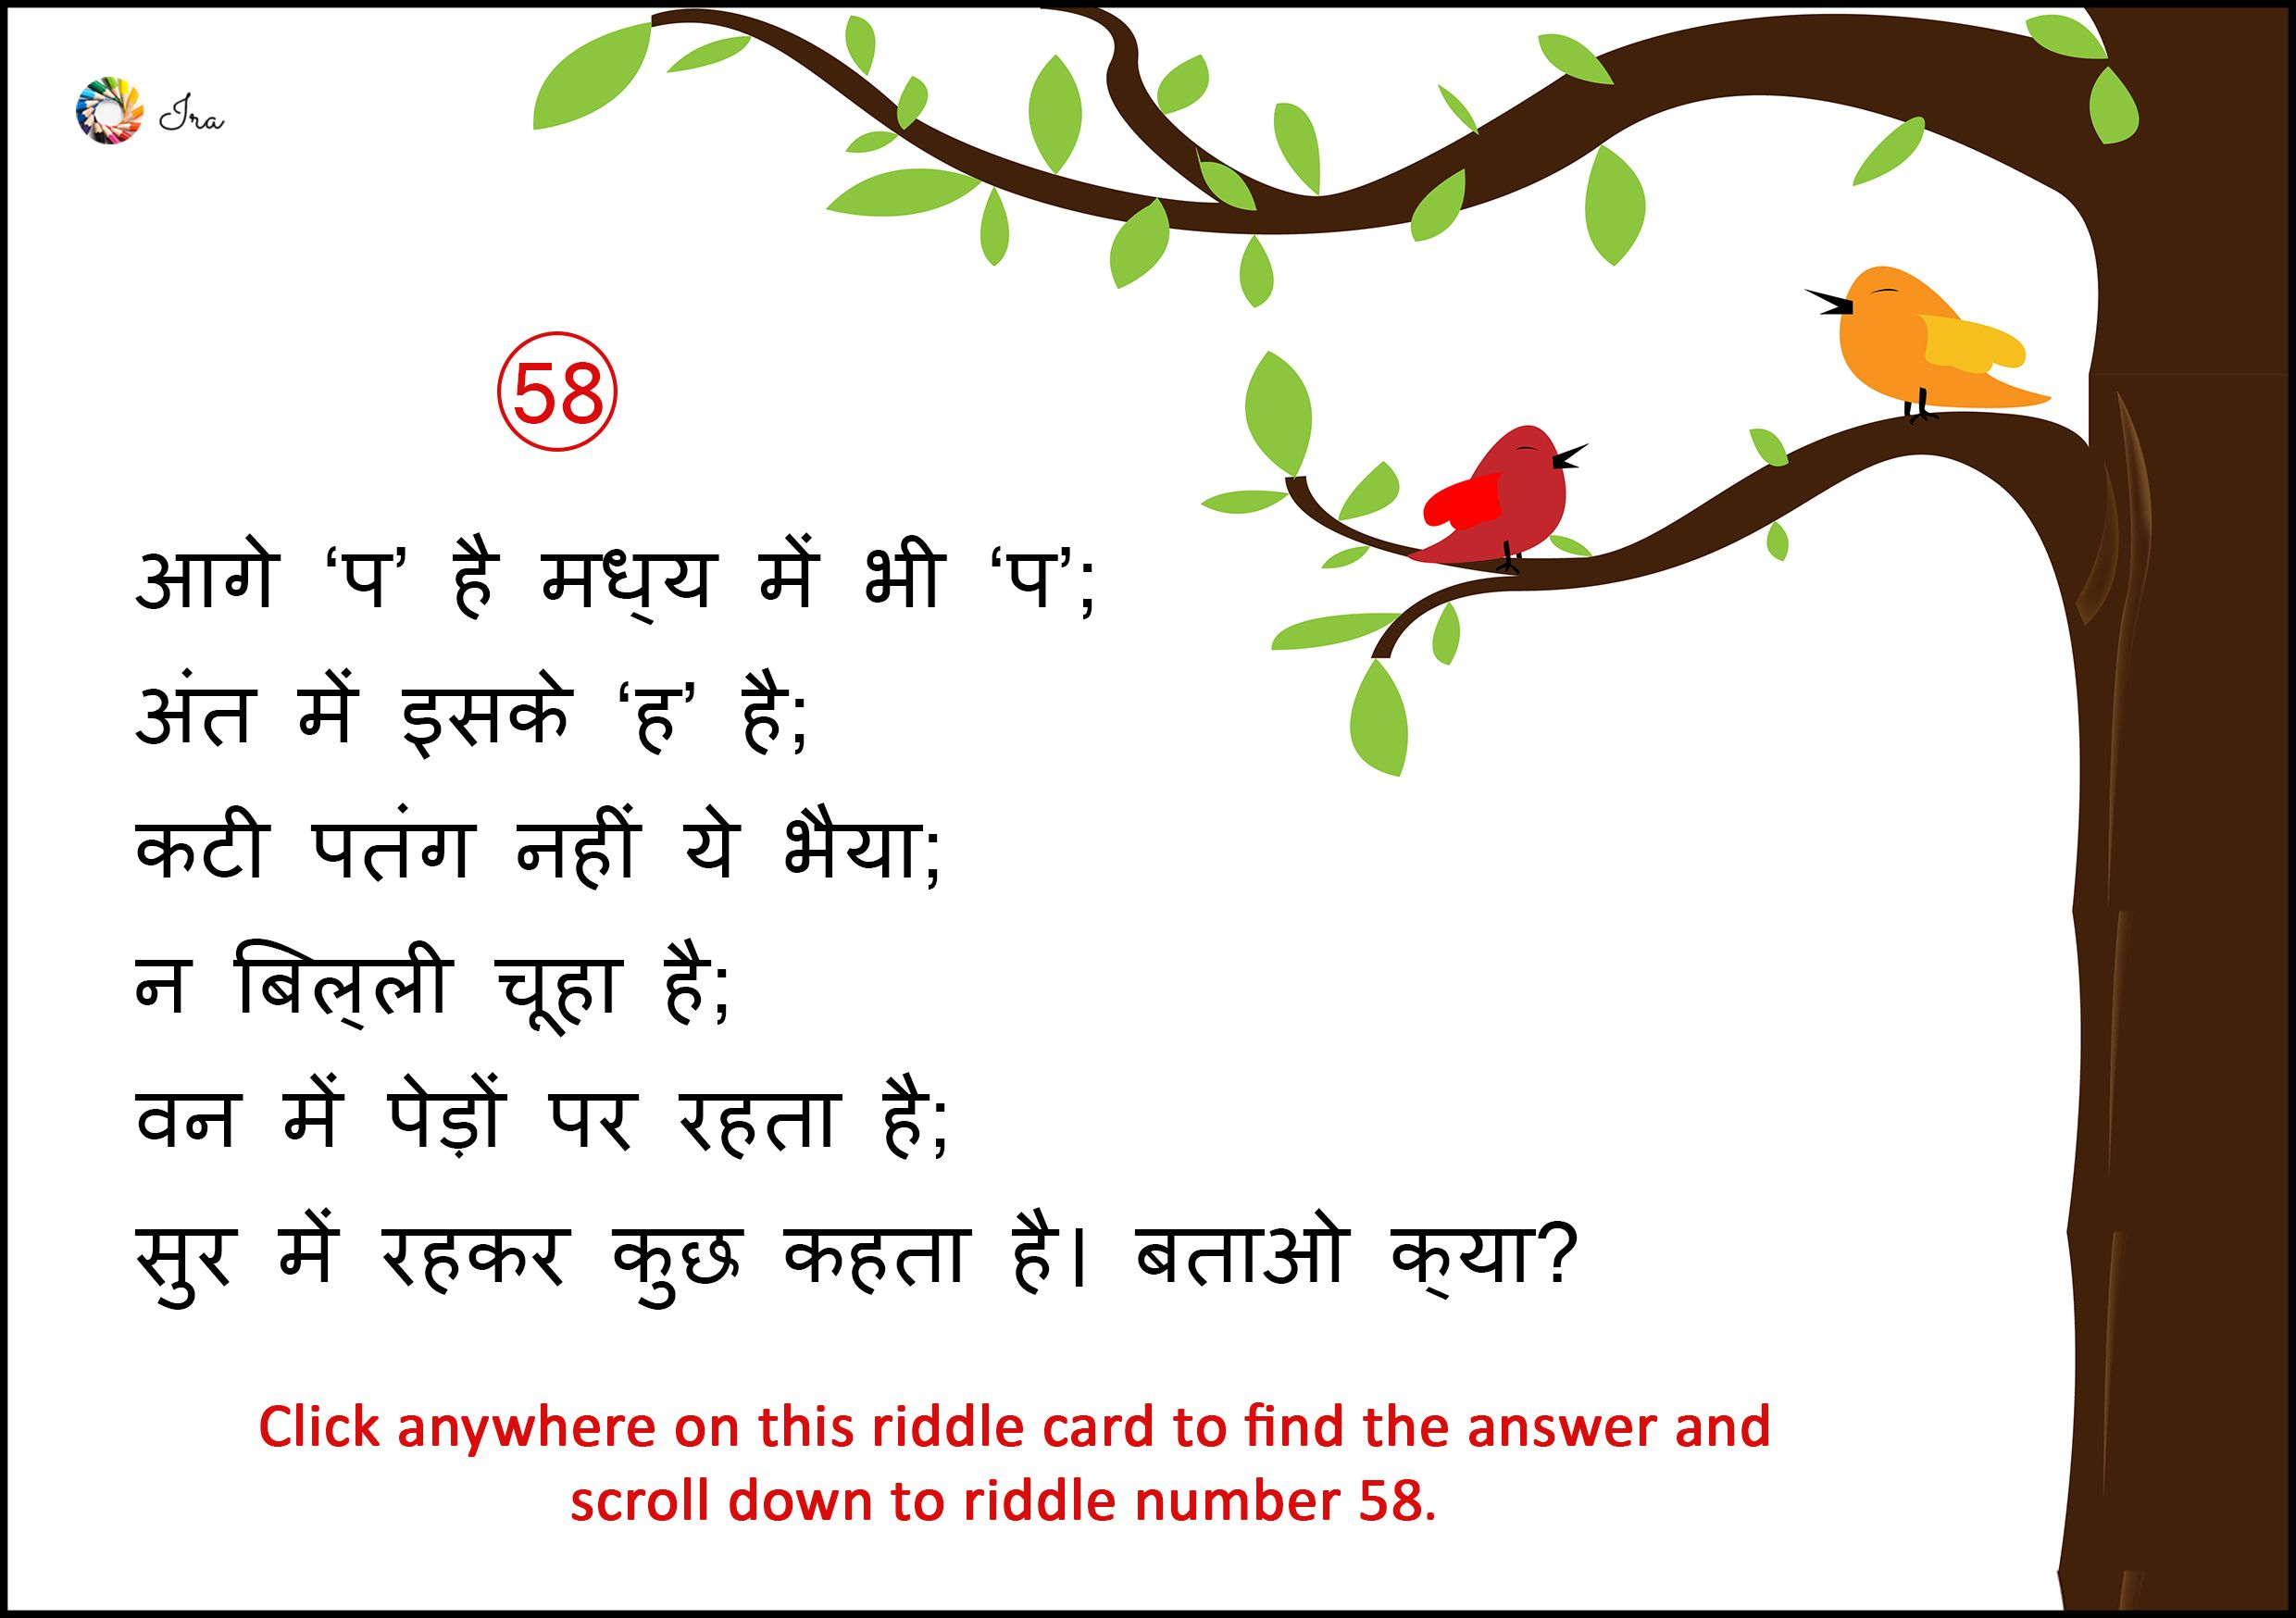 60 Rare Riddles In Hindi With Answers Ira Parenting Riddles Life Skills Funny Brain Teasers